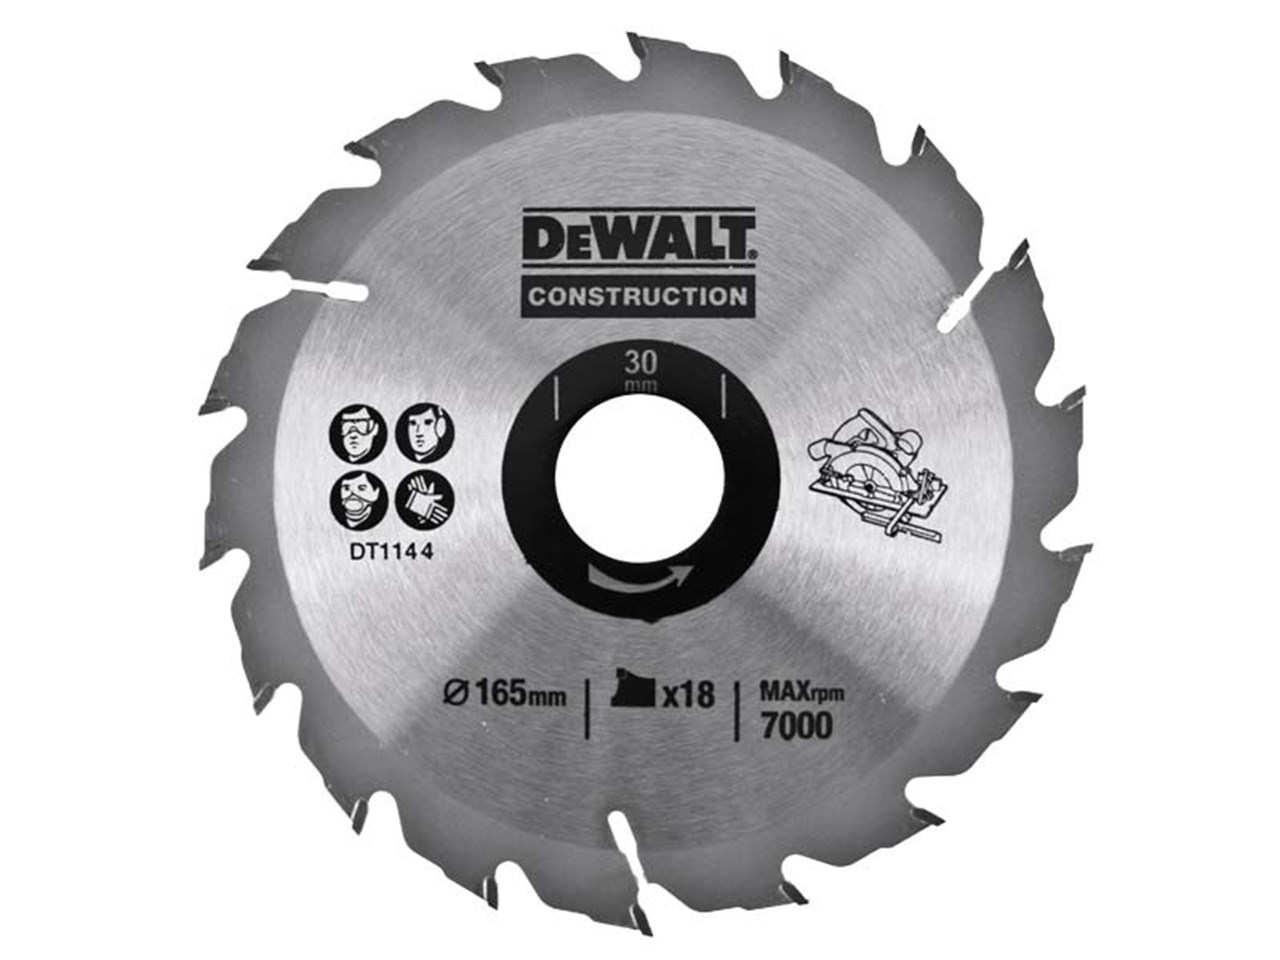 Dewalt dt1144 qz 165 x 30 x 18t circular saw construction blade greentooth Choice Image